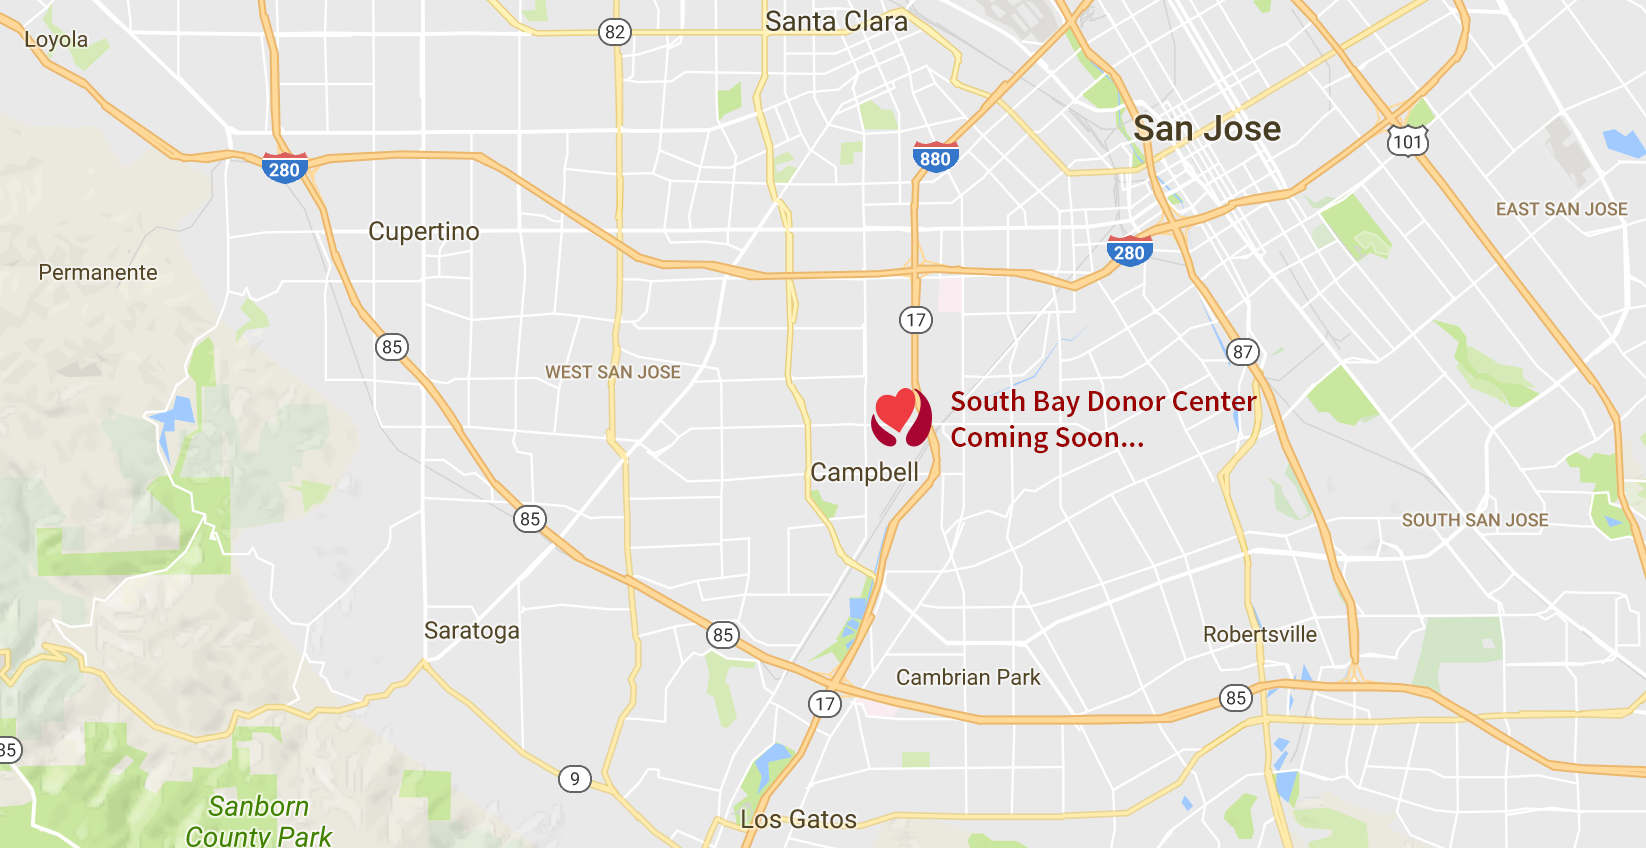 https://bloodcenter.stanford.edu/wp-content/uploads/2017/08/081117-coming-soon-map.png